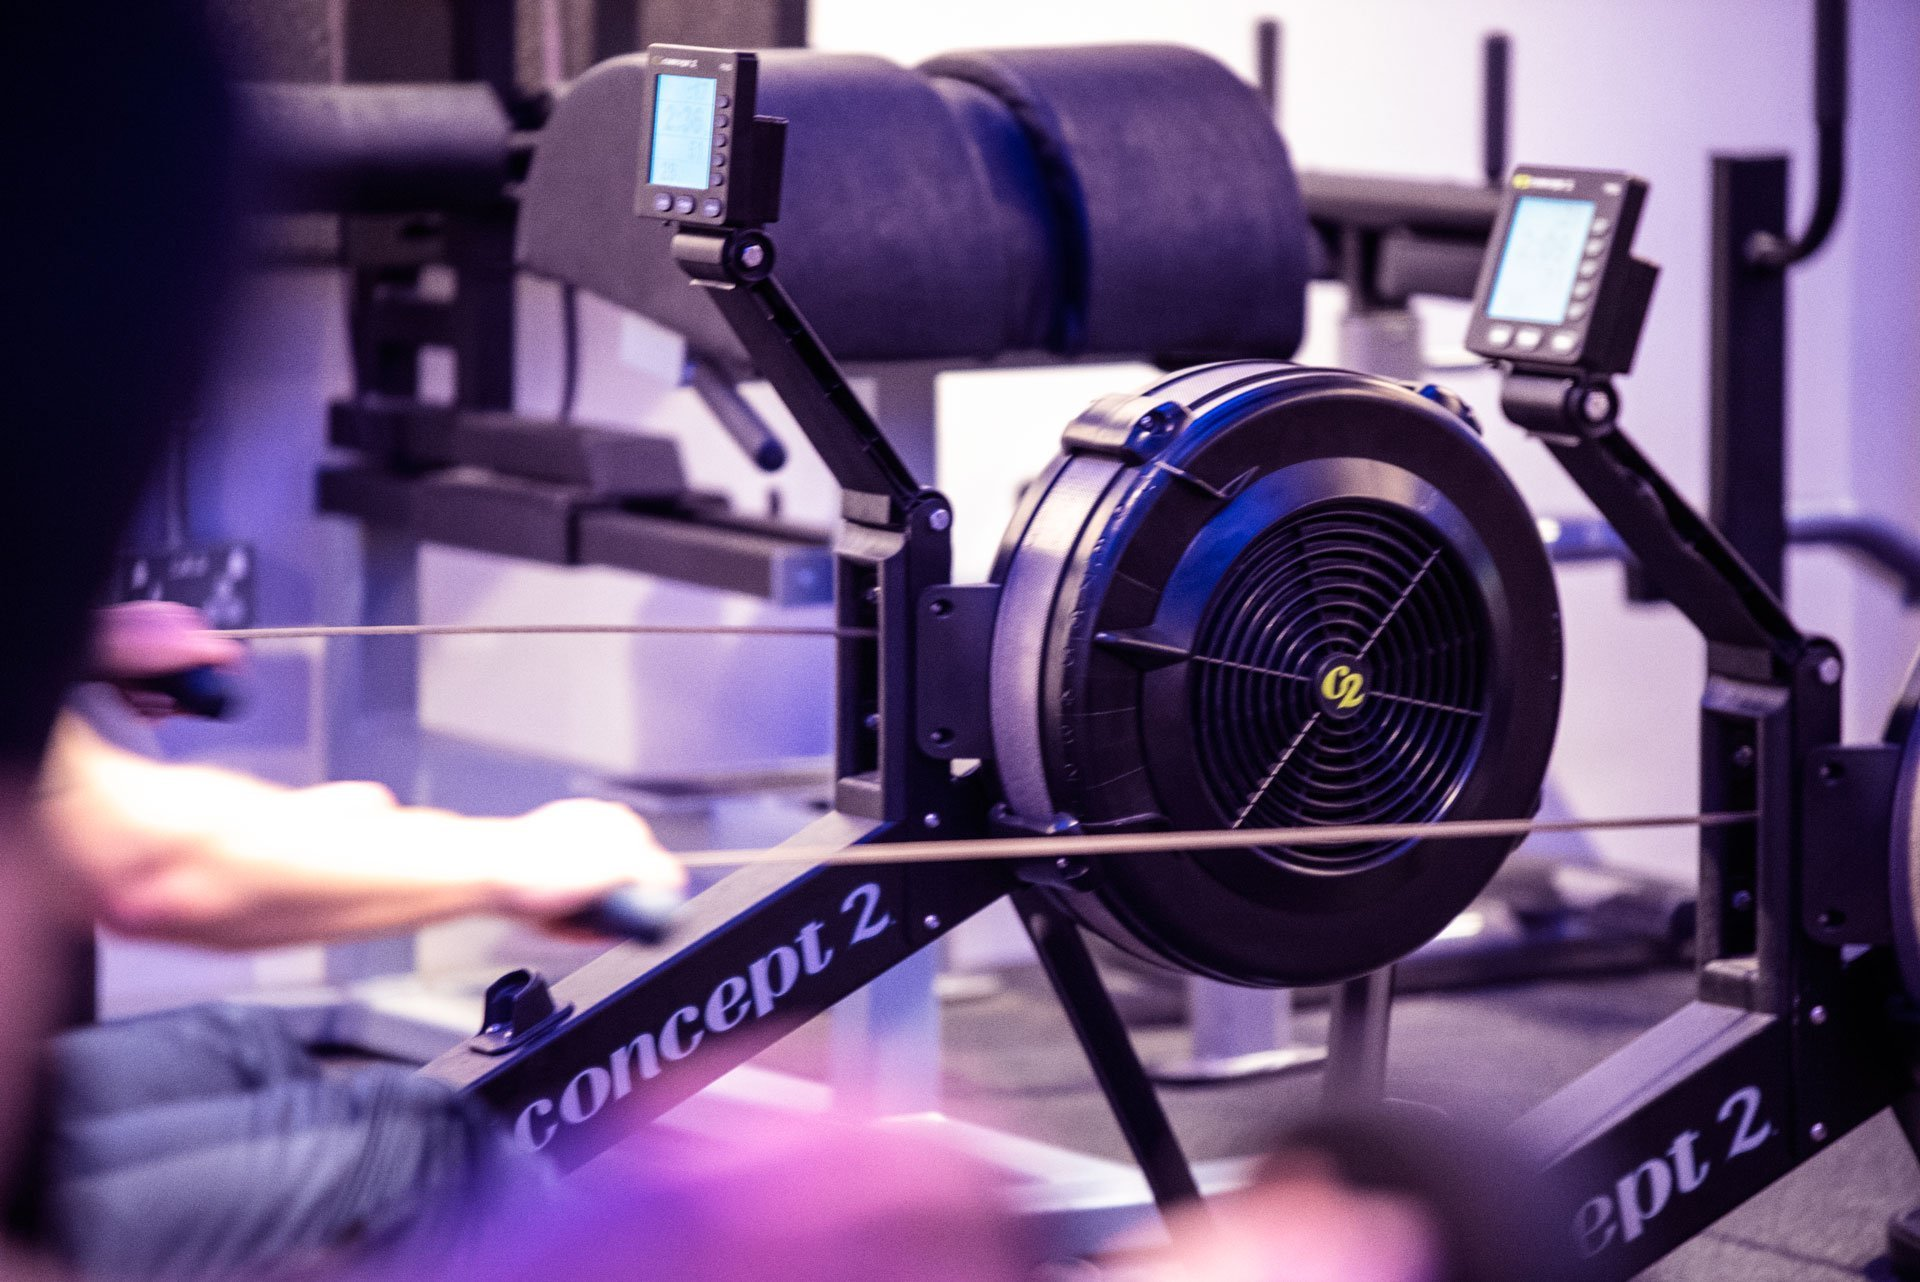 Equilibrium Gym & Fitness Rower